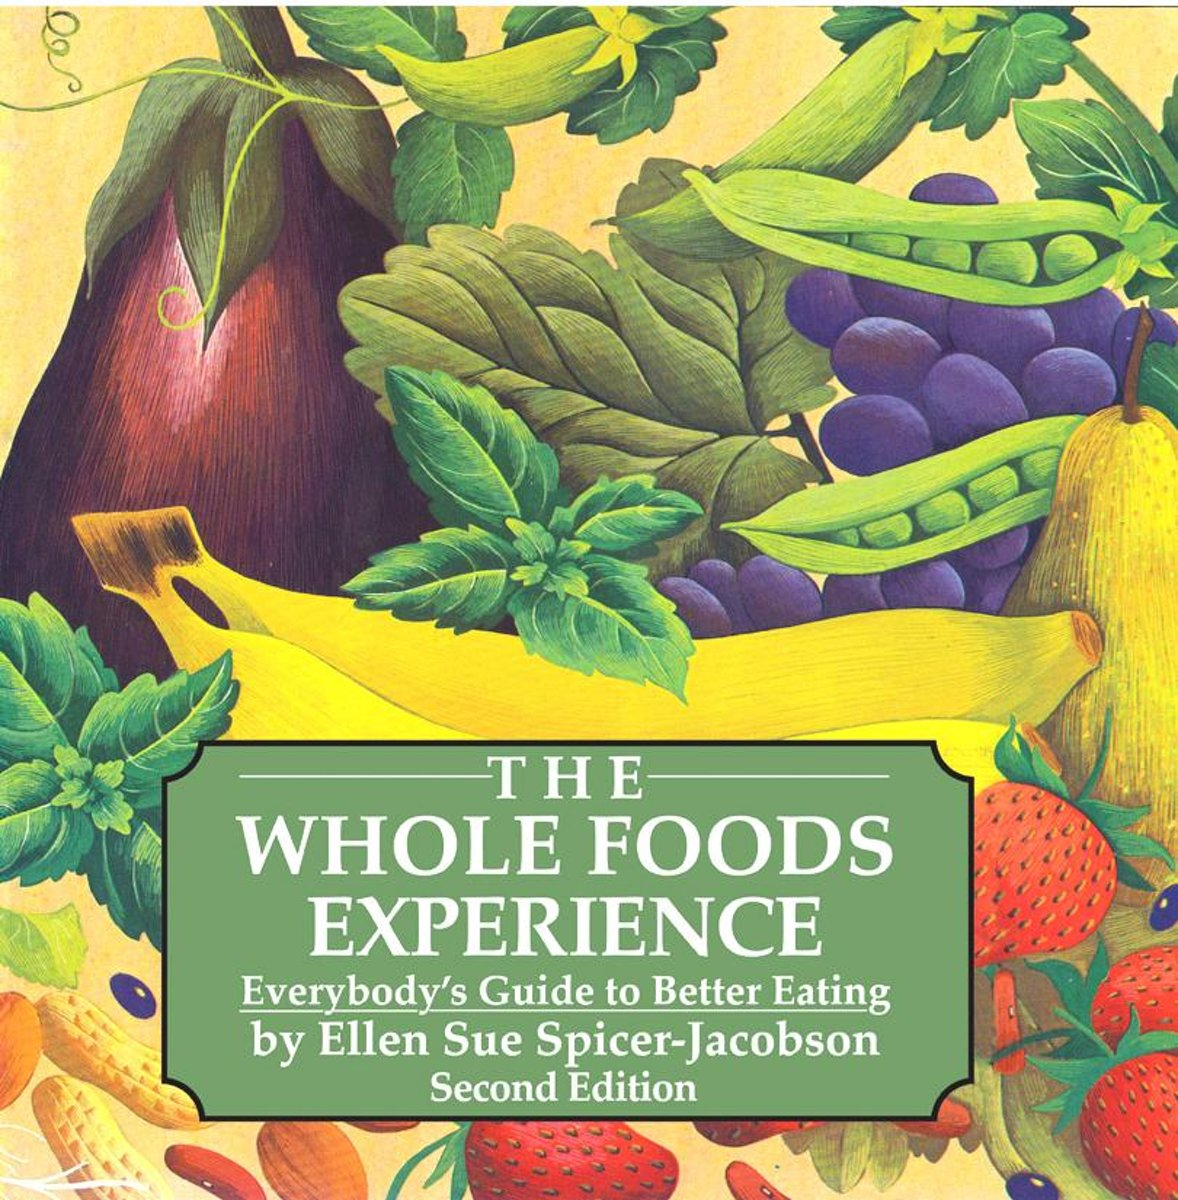 The Whole Foods Experience 2nd edition